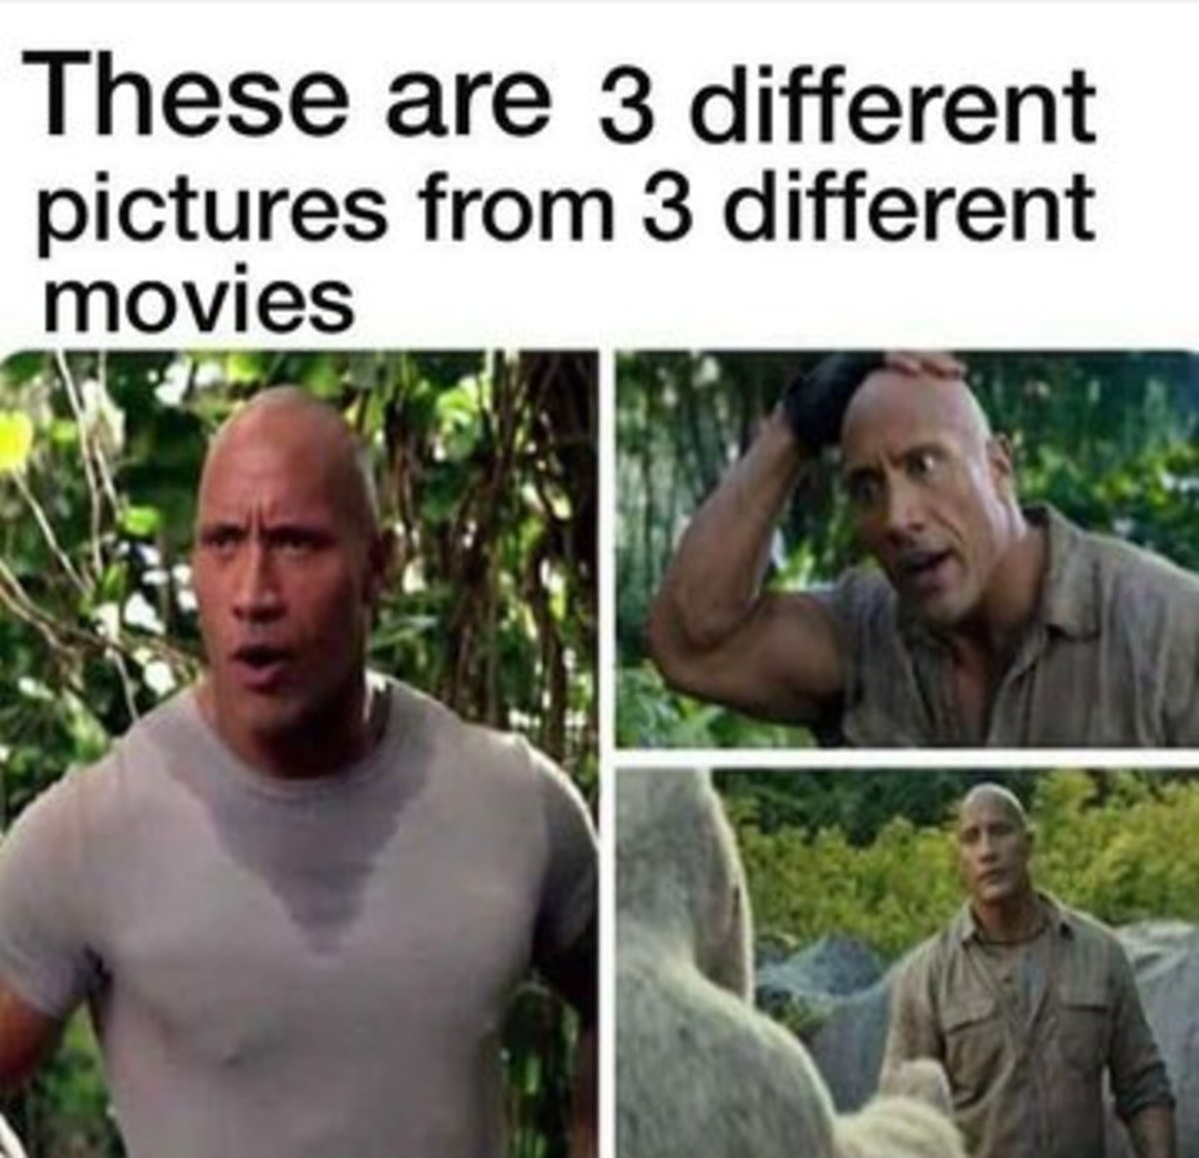 Poor Dwayne keeps getting stranded in a forest every time...